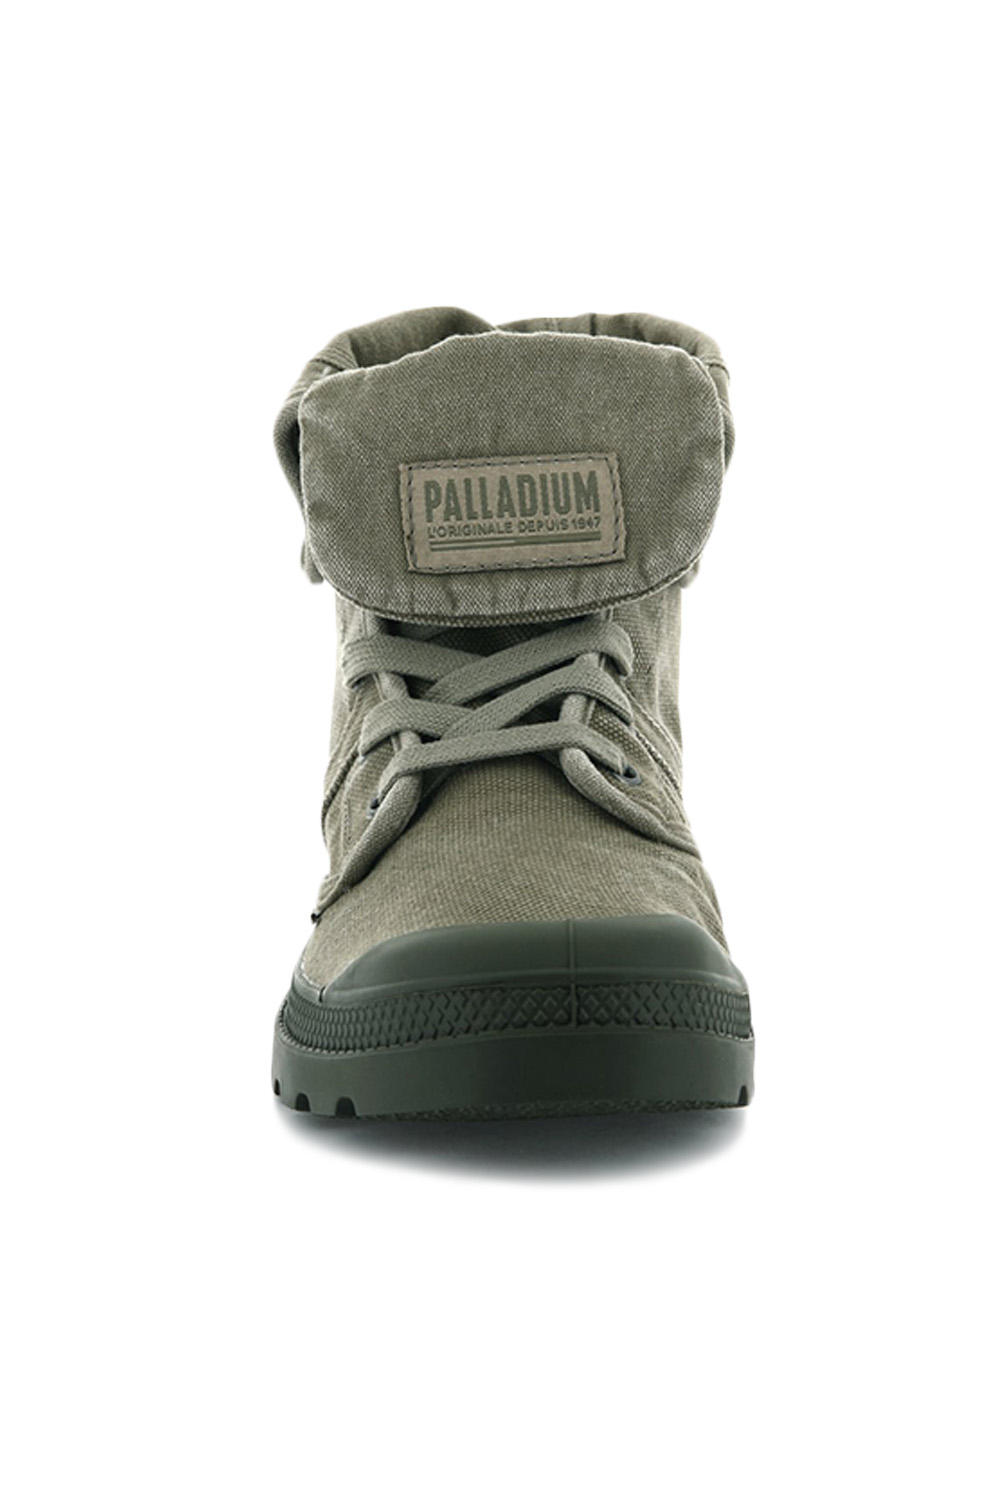 thumbnail 18 - Palladium Mens Pallabrouse Baggy Combat Military Desert Canvas Ankle Boots